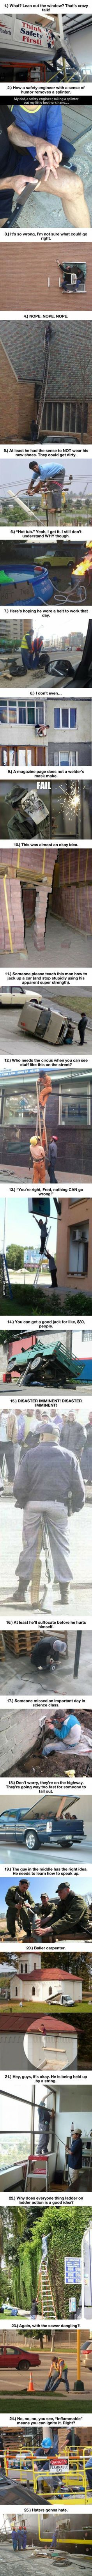 These 25 People Are About To Feel Serious Pain. But They Sorta Have It Coming, LOL.